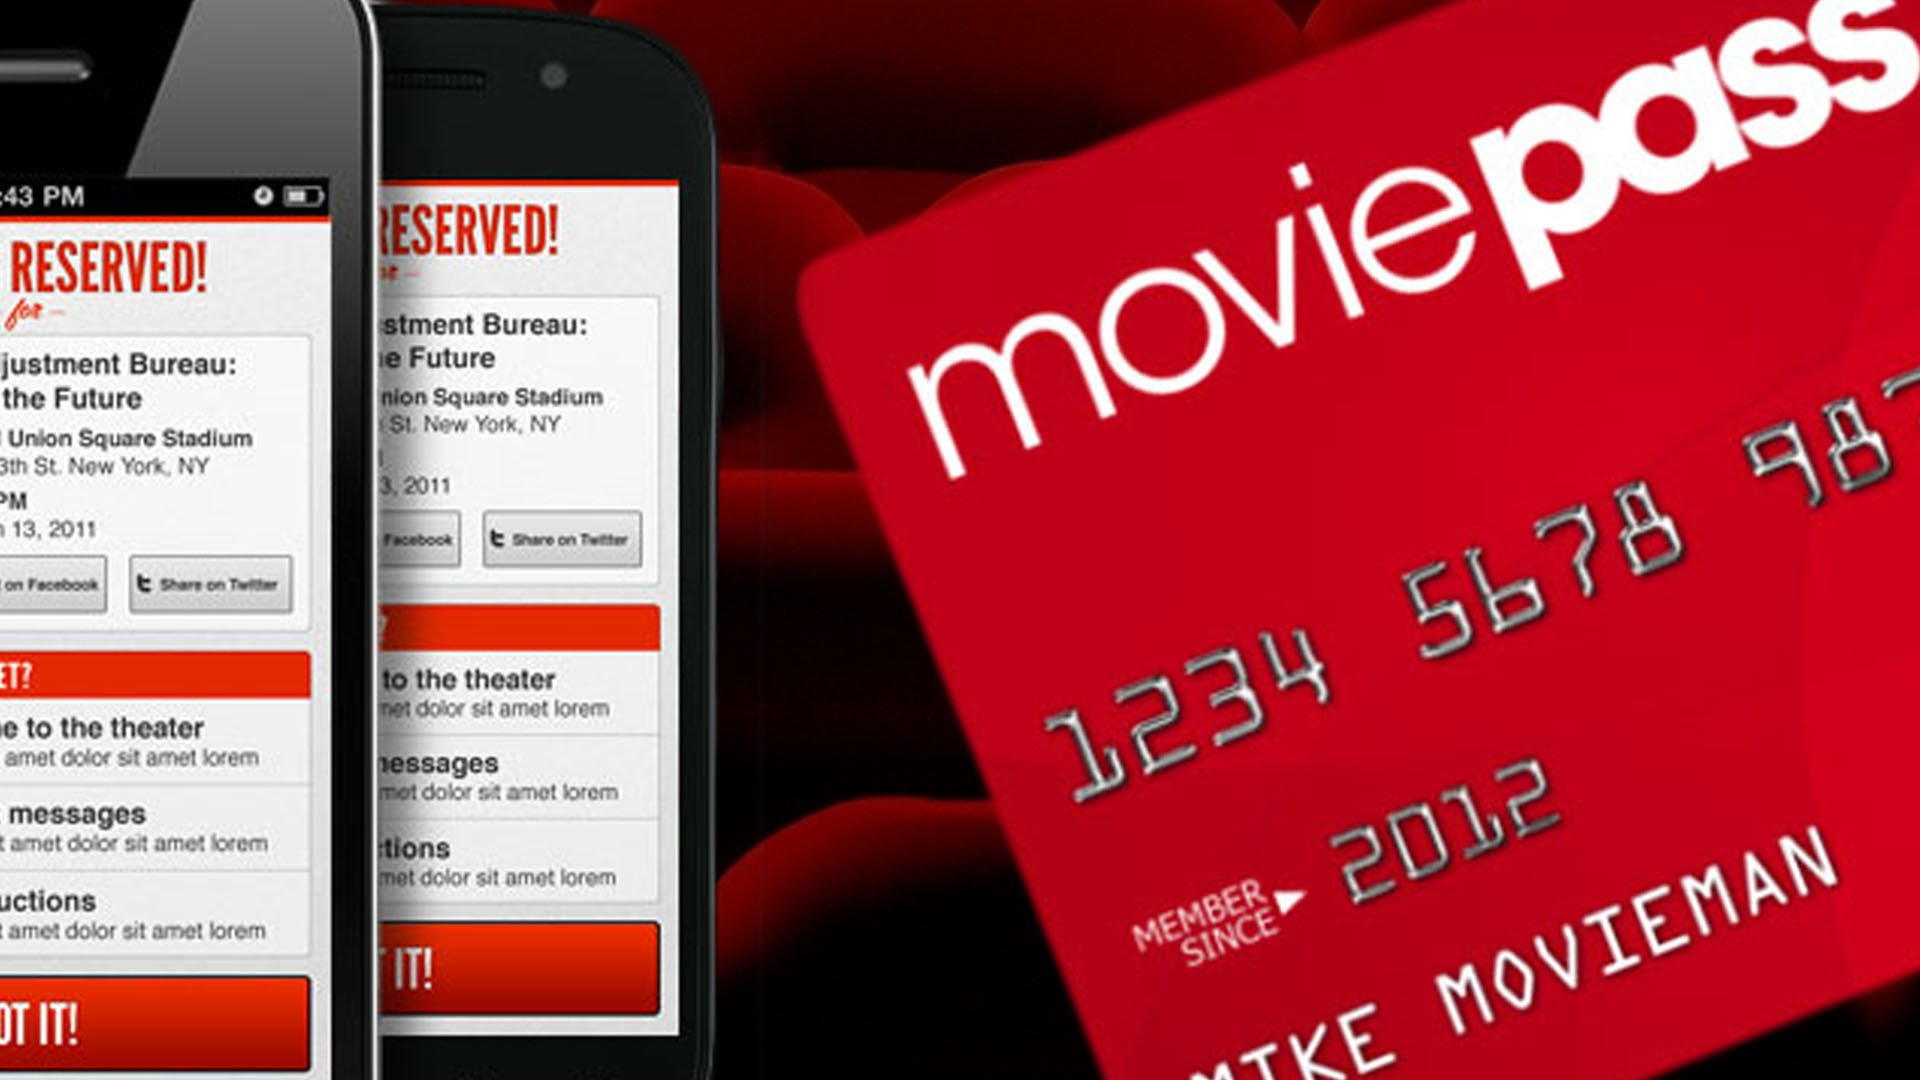 moviepass-is-dropping-its-monthly-subscription-to-999-social.jpg